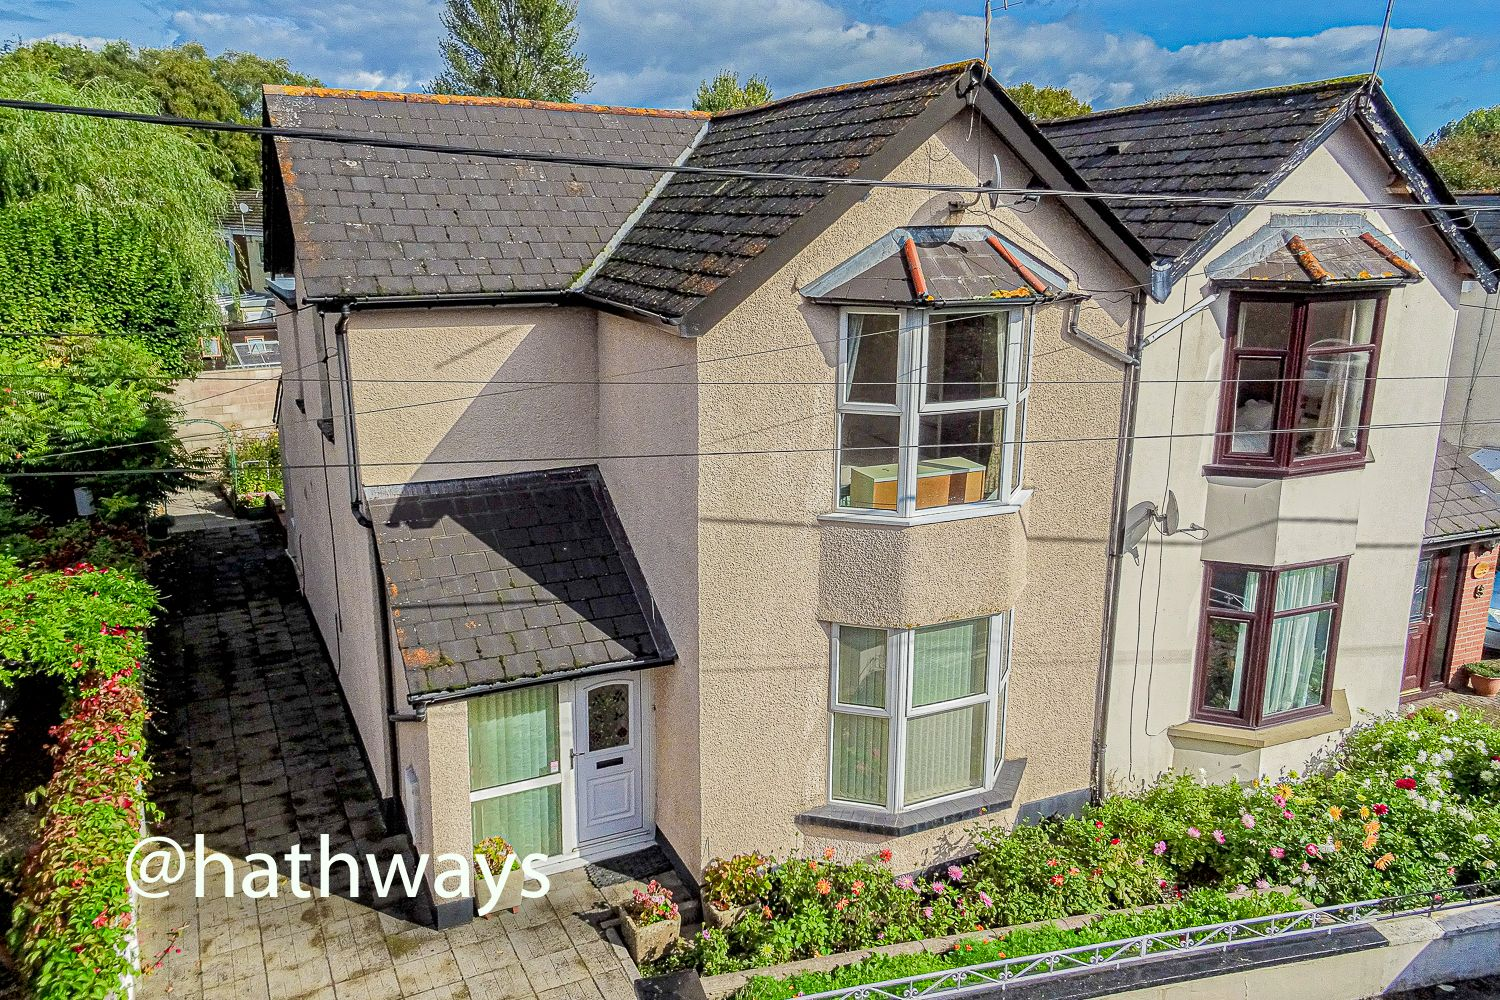 2 bed house for sale in Station Road, NP18